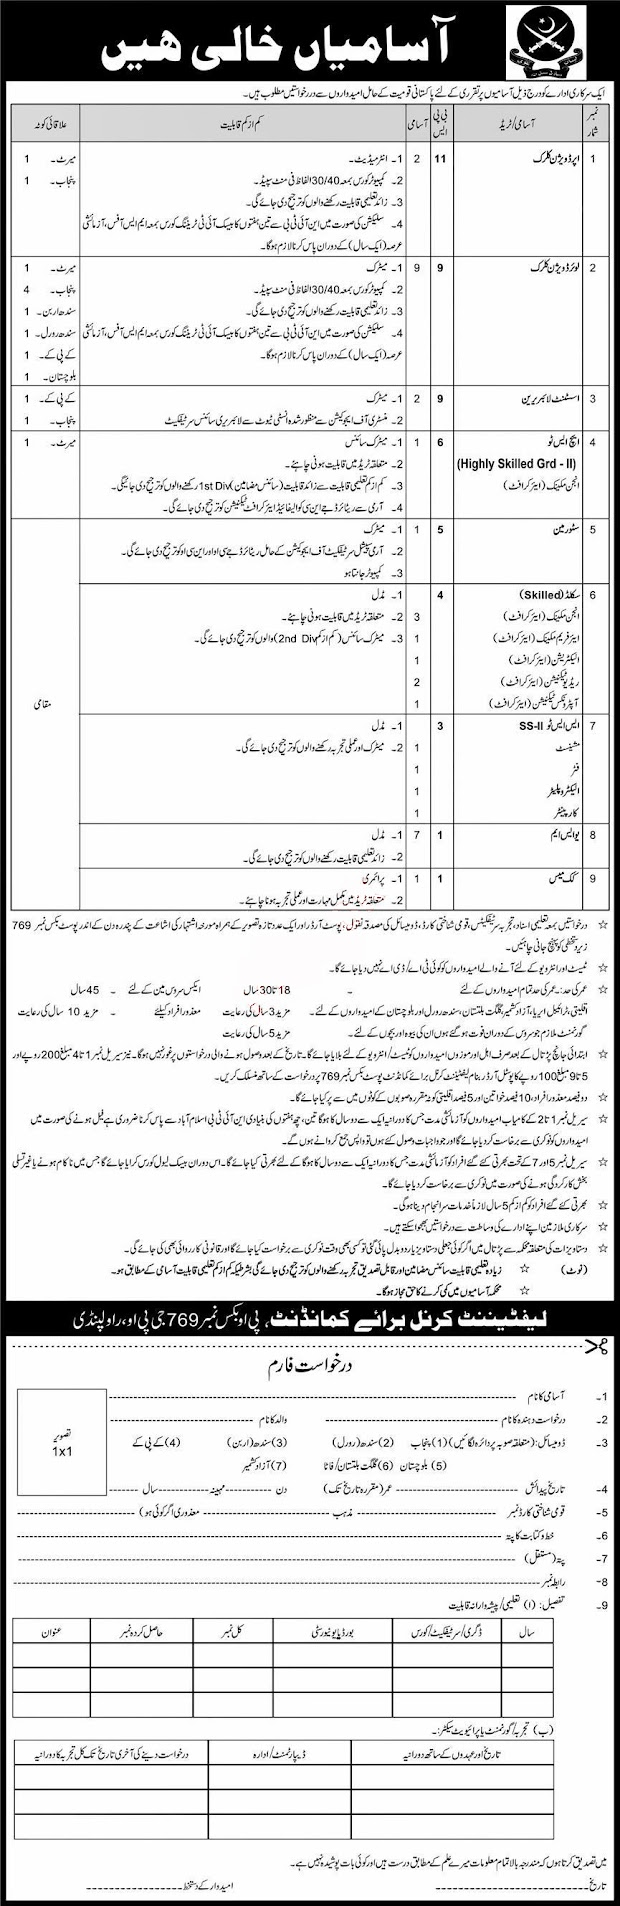 LDC, UDC, Assistant and Storeman Jobs in Pak Army